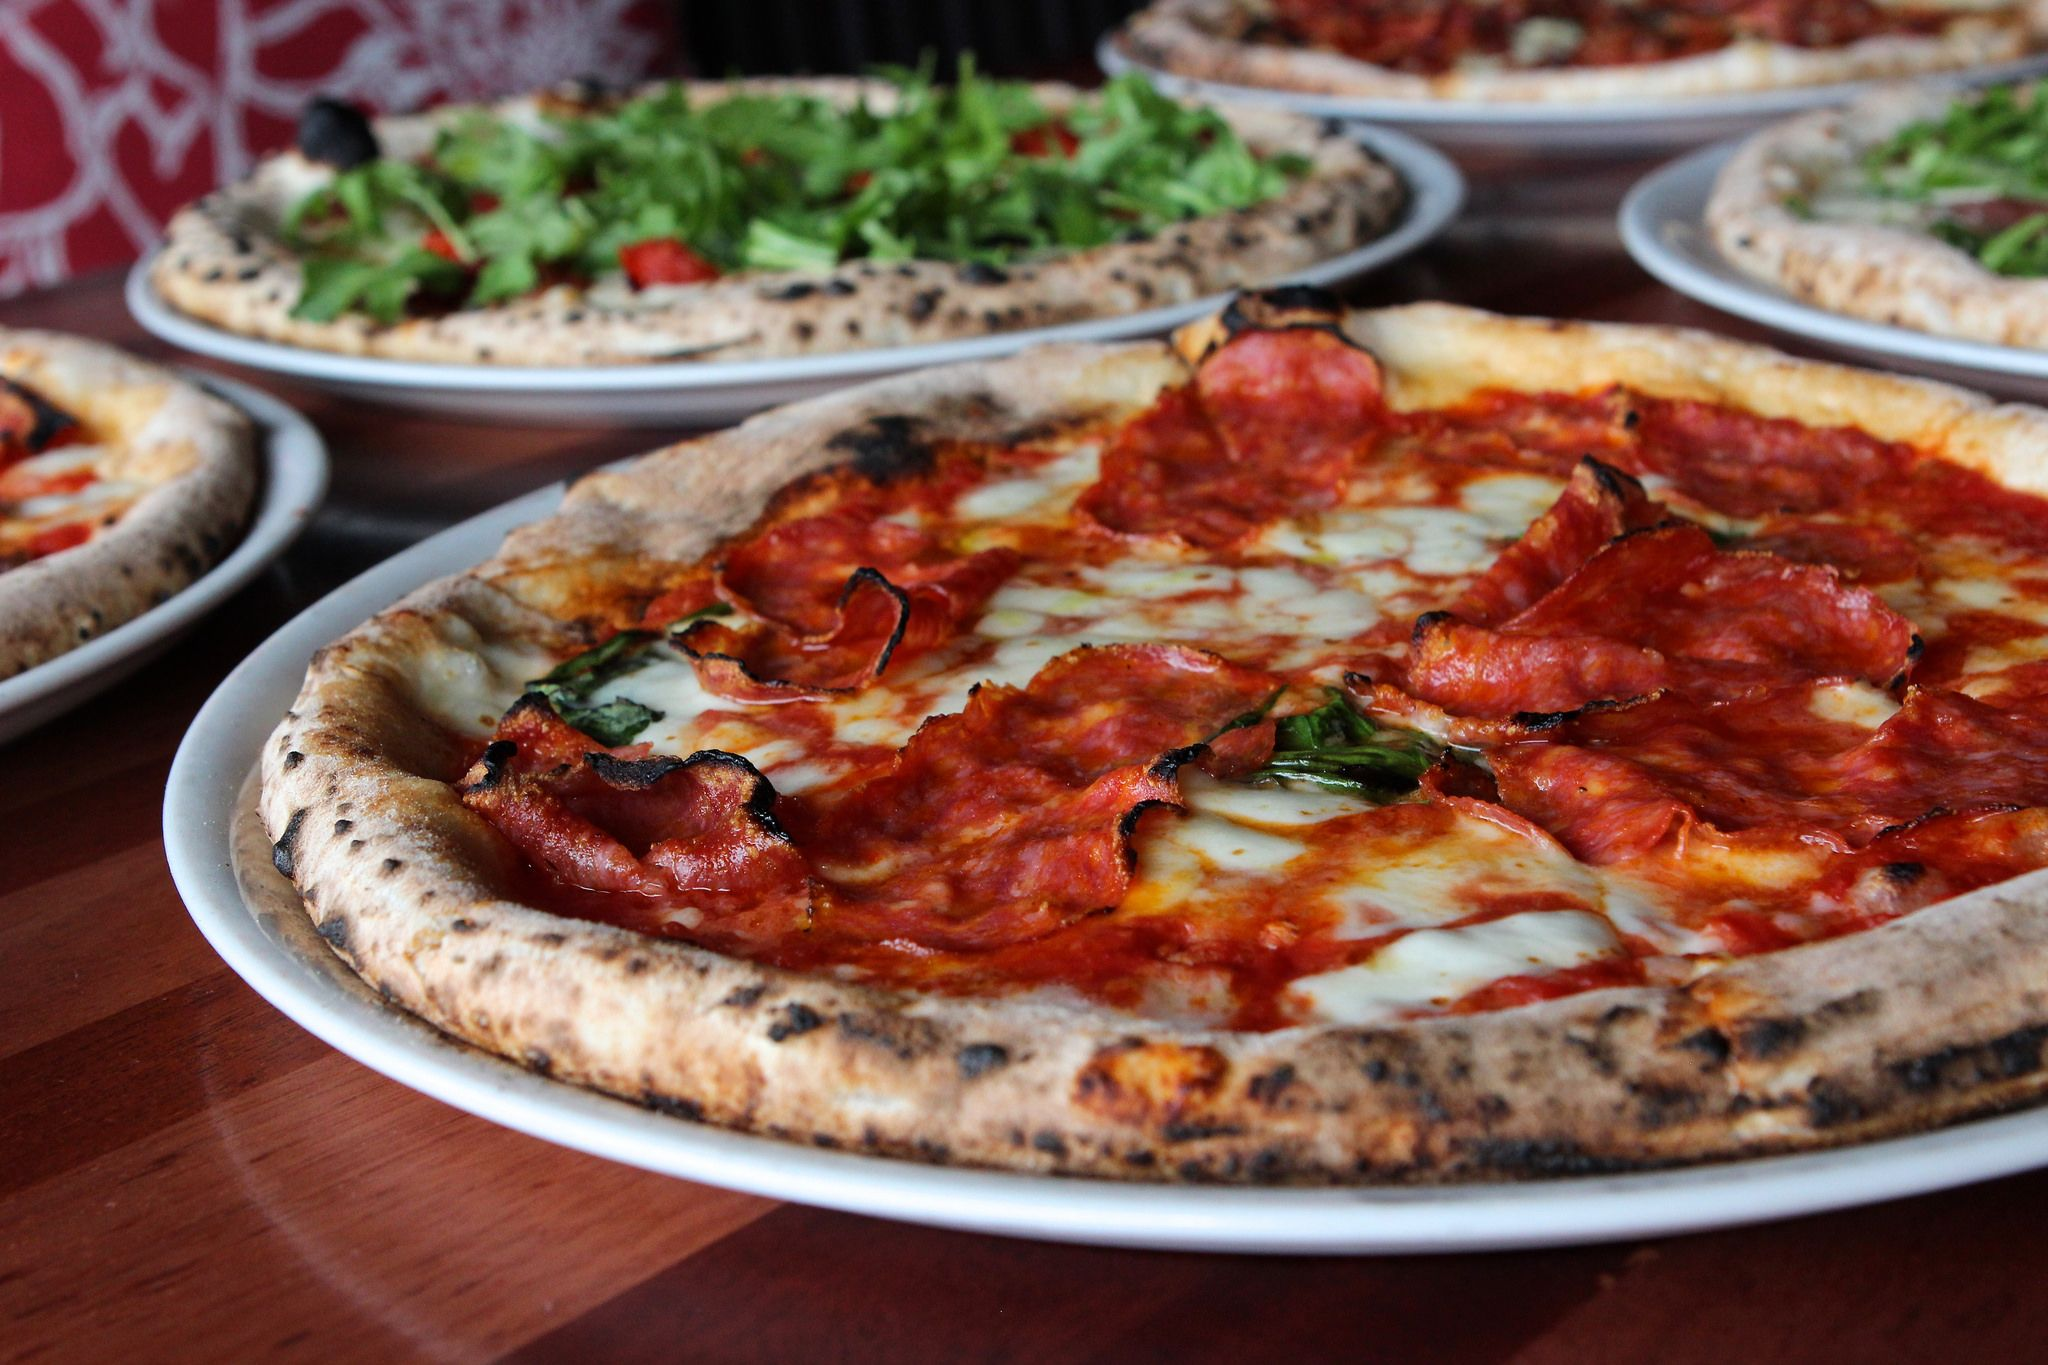 Cane Rosso This Restaurant Is Famous For Its Award Winning And Television Worthy Neapolitan Pizza Feat Authentic Italian Pizza Good Pizza Dallas Restaurants